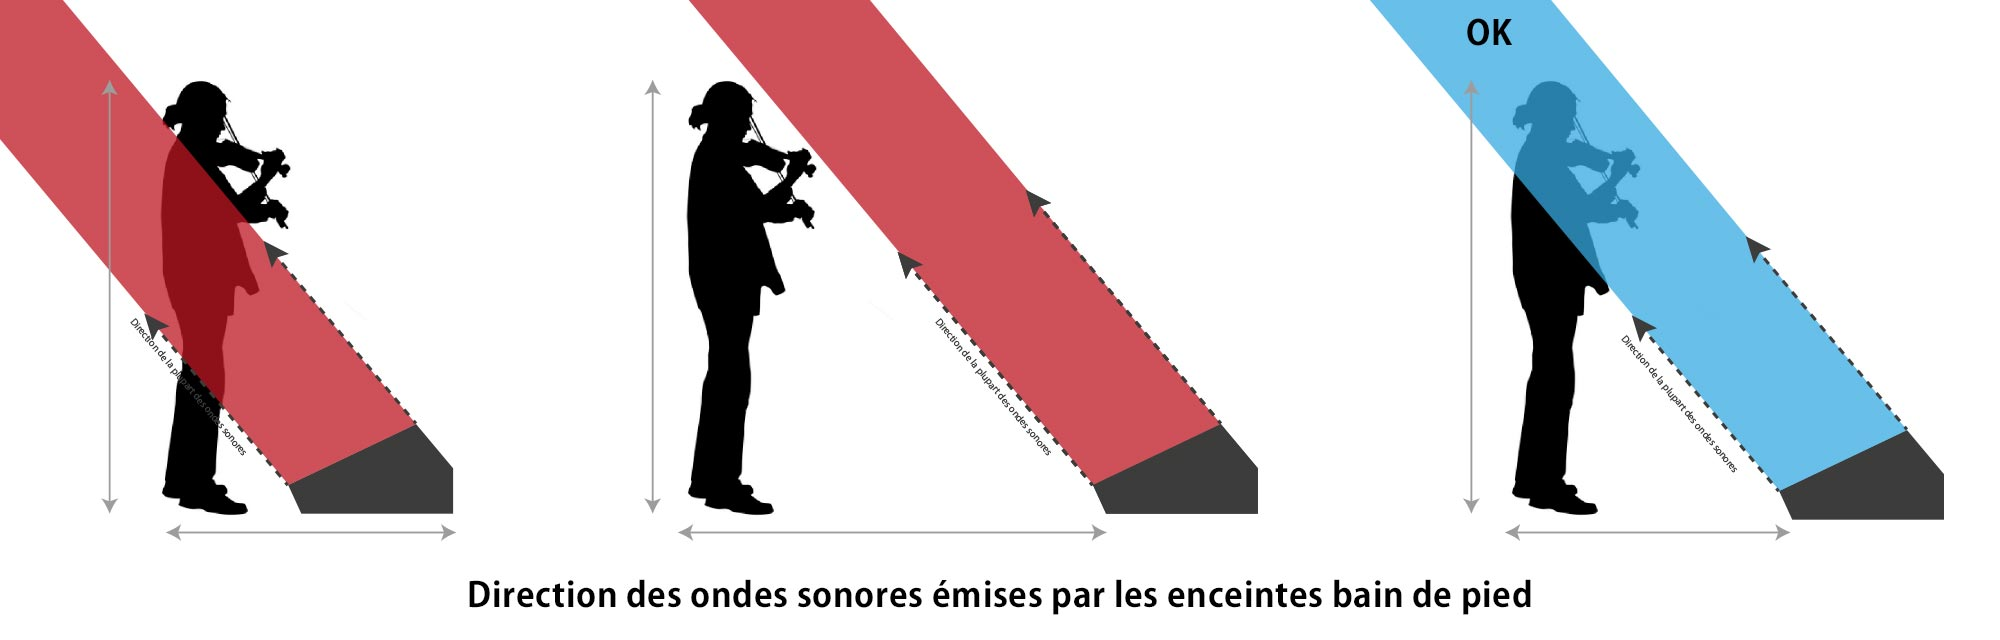 Direction des ondes sonores